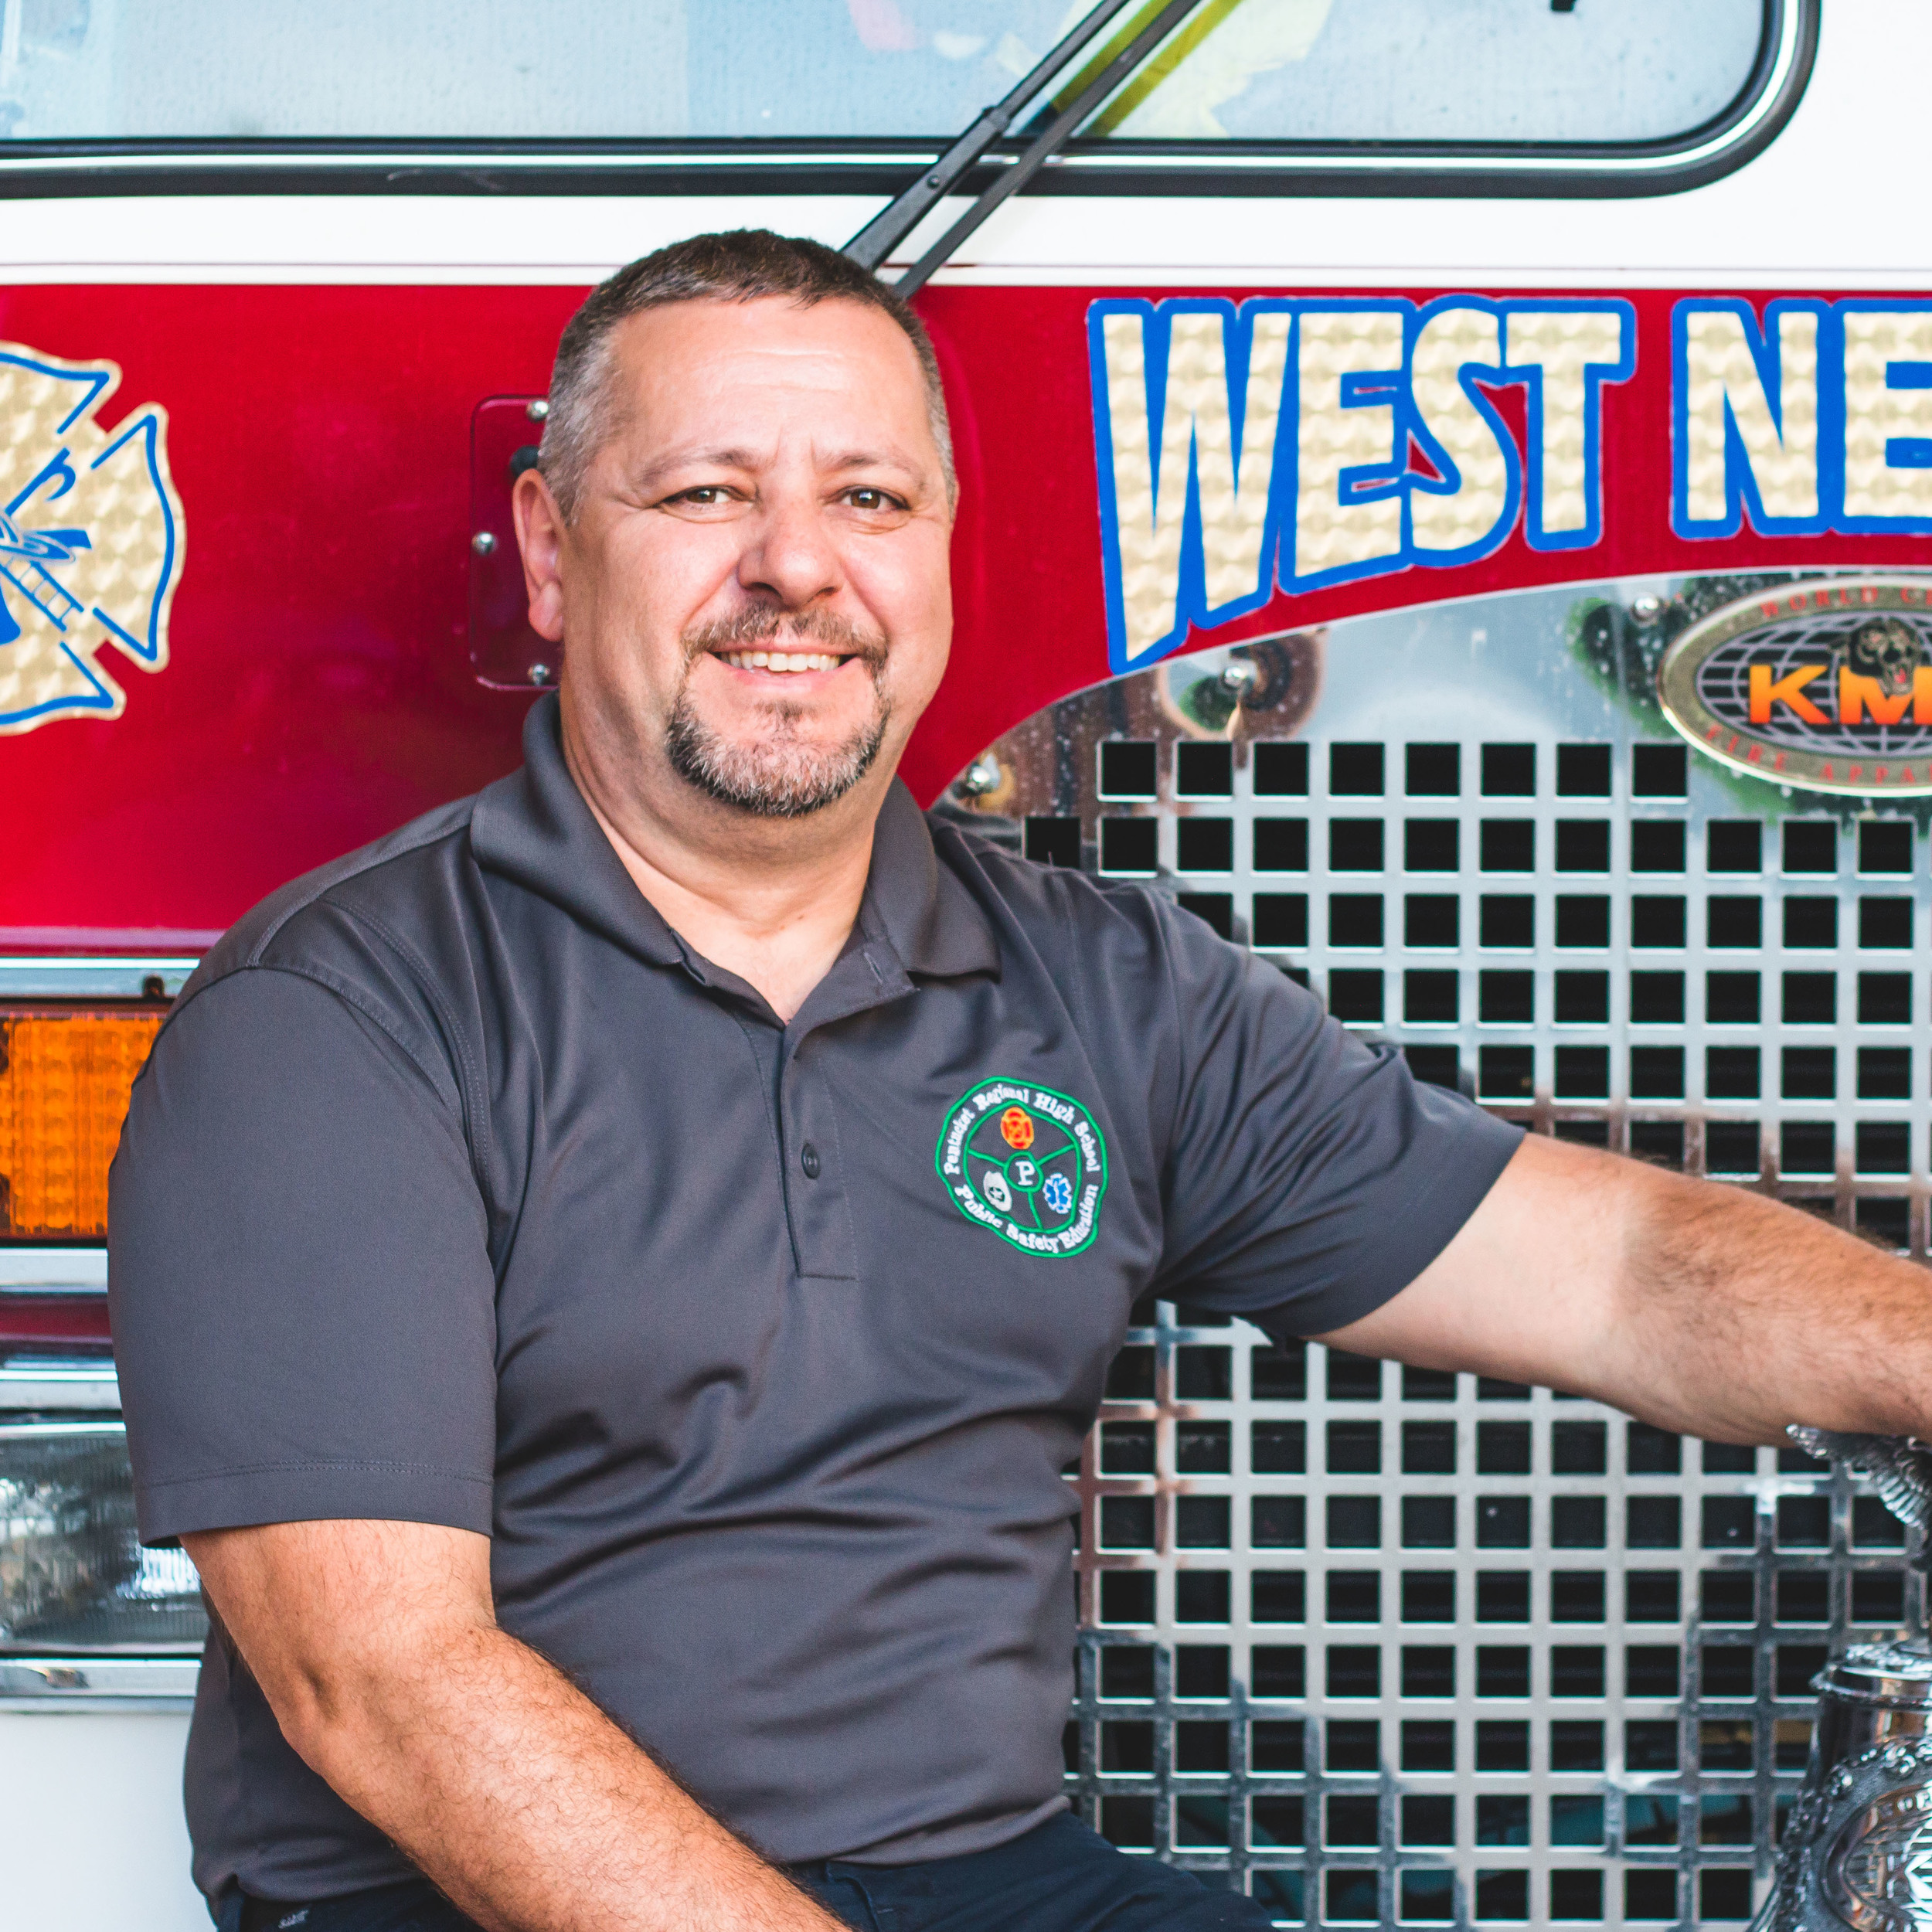 DAVE EVANS, VICE PRINCIPAL AT PENTUCKET REGIONAL, HAS DEDICATED HIS LIFE TO SERVING THE COMMUNITY THROUGH PUBLIC SAFTEY